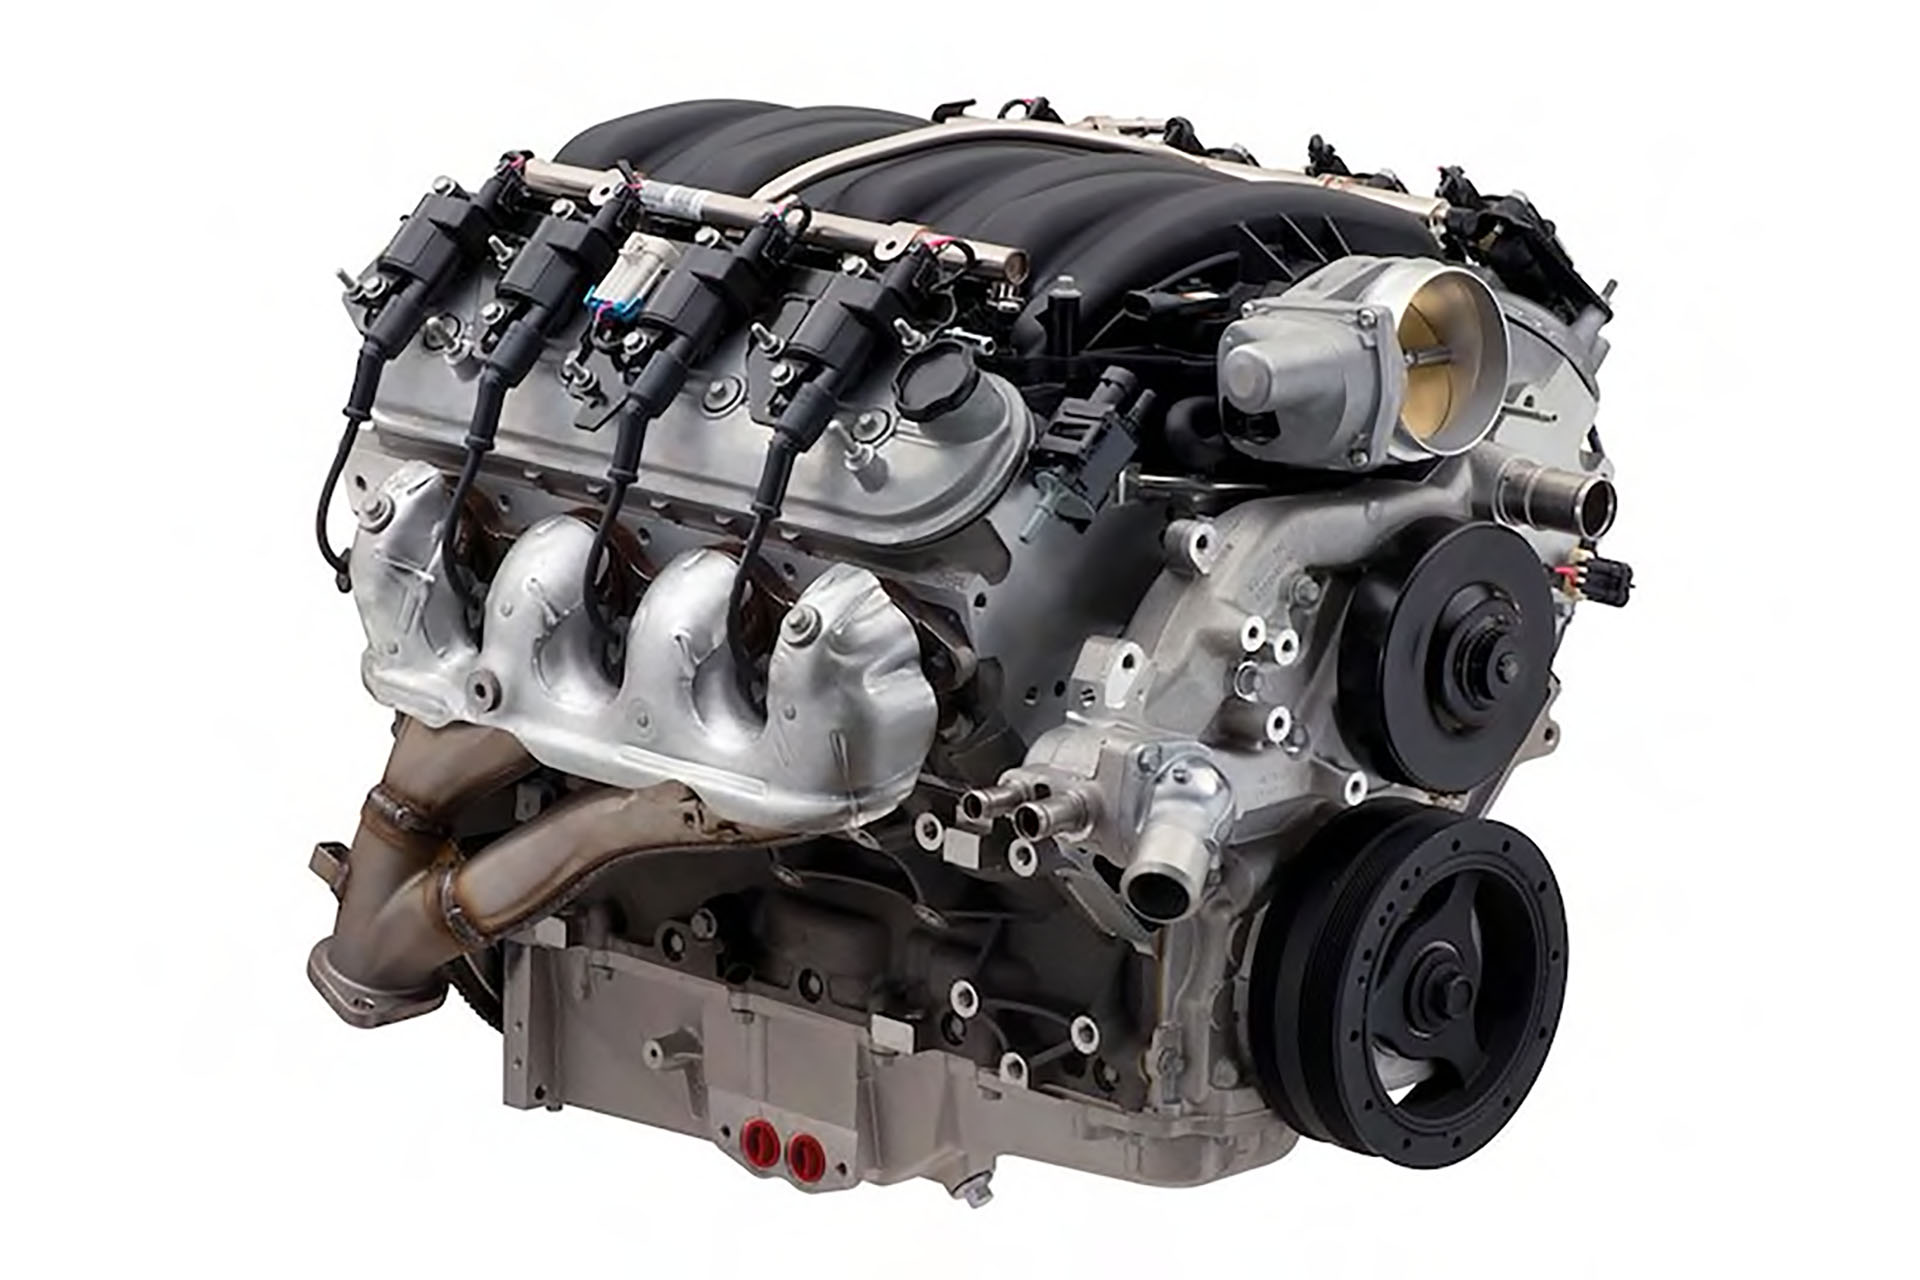 Chevy small block LS7 engine